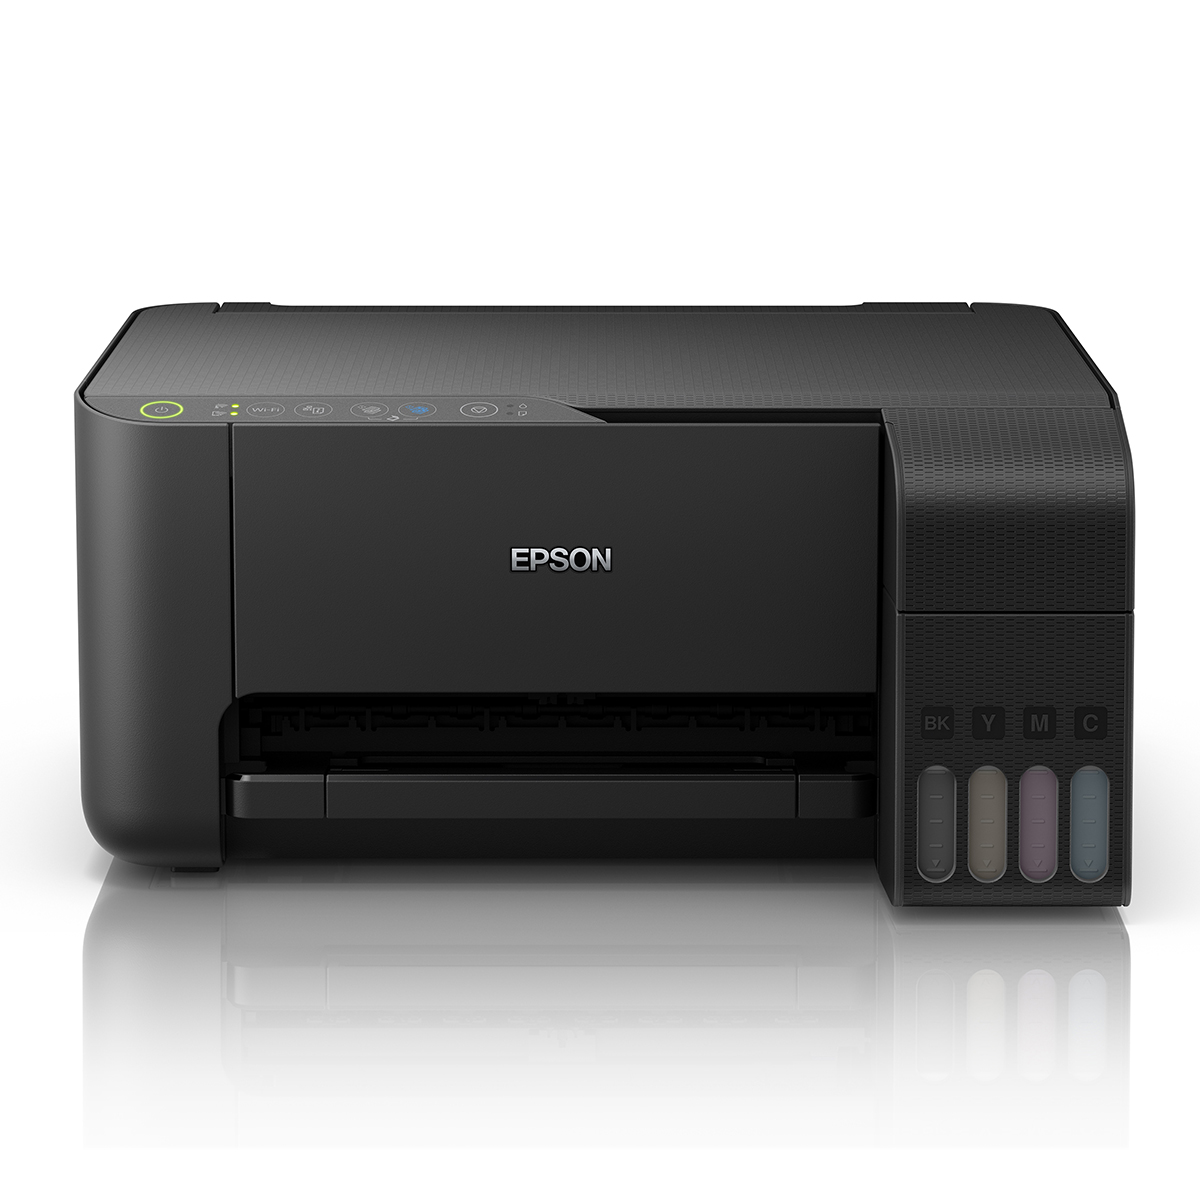 Epson EcoTank ET-2710 A4 Colour Inkjet Multifunction